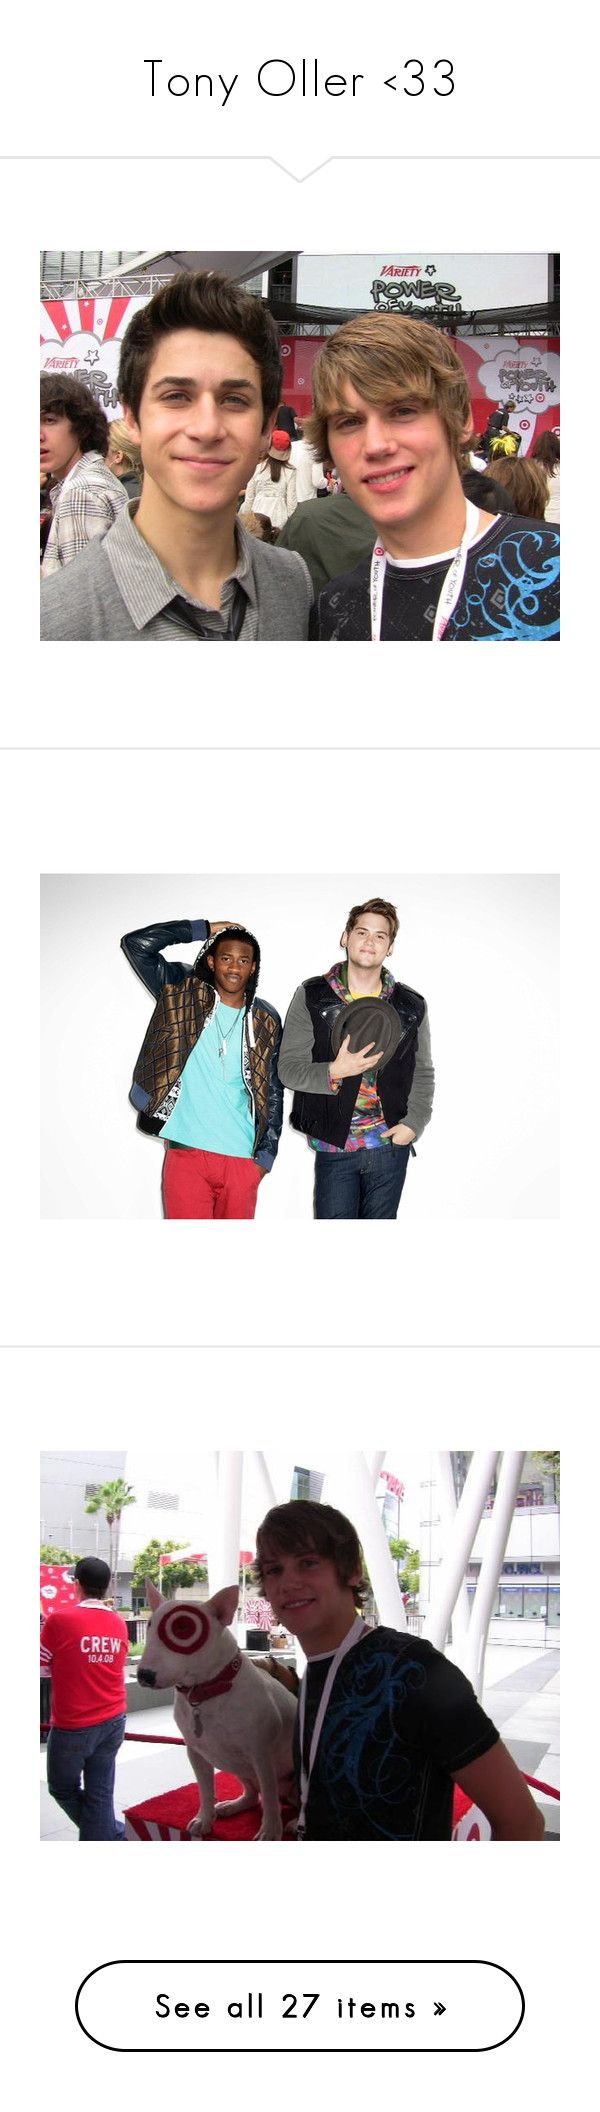 """""""Tony Oller <33"""" by whitneyjules ❤ liked on Polyvore featuring tony oller, david henrie, guys and people"""